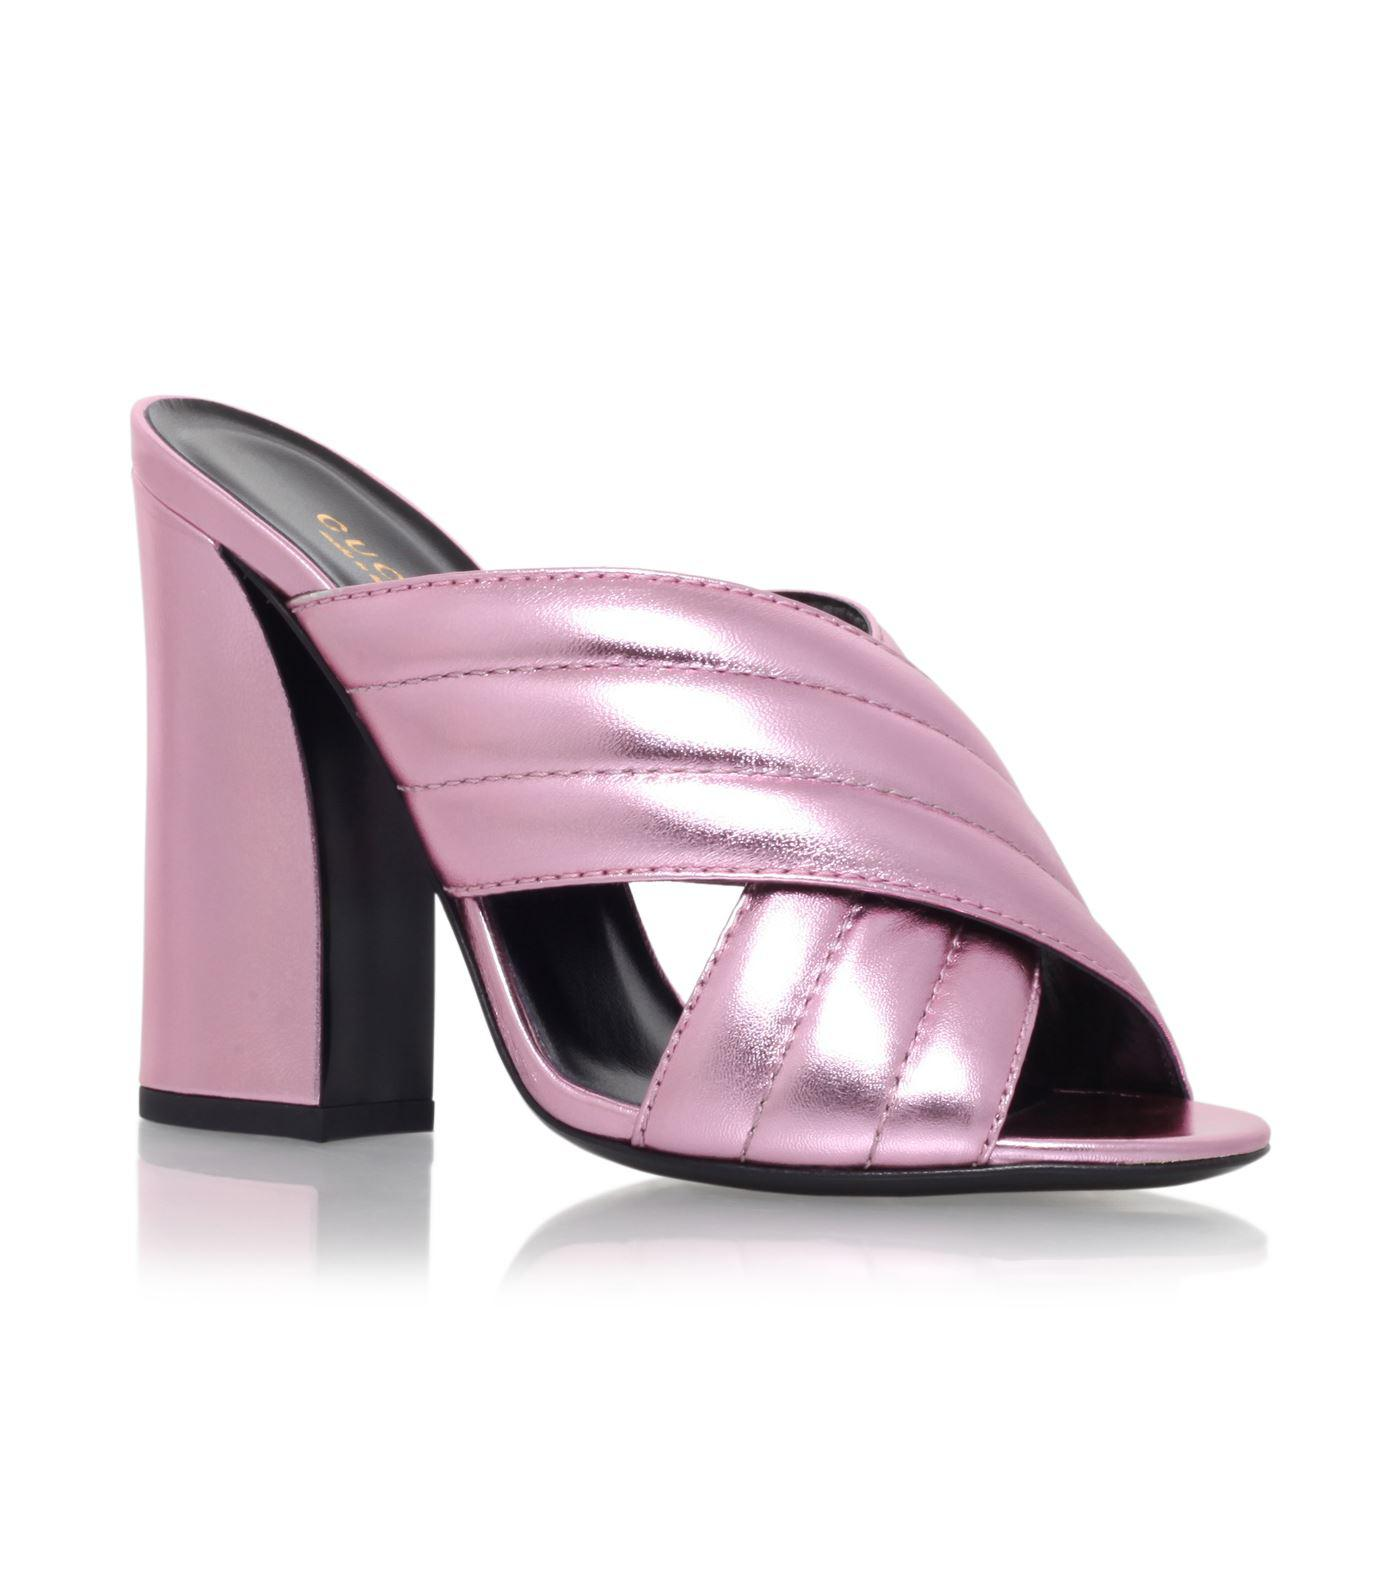 a5ab7767030 Lyst - Gucci Sylvia Mules in Pink - Save 22%